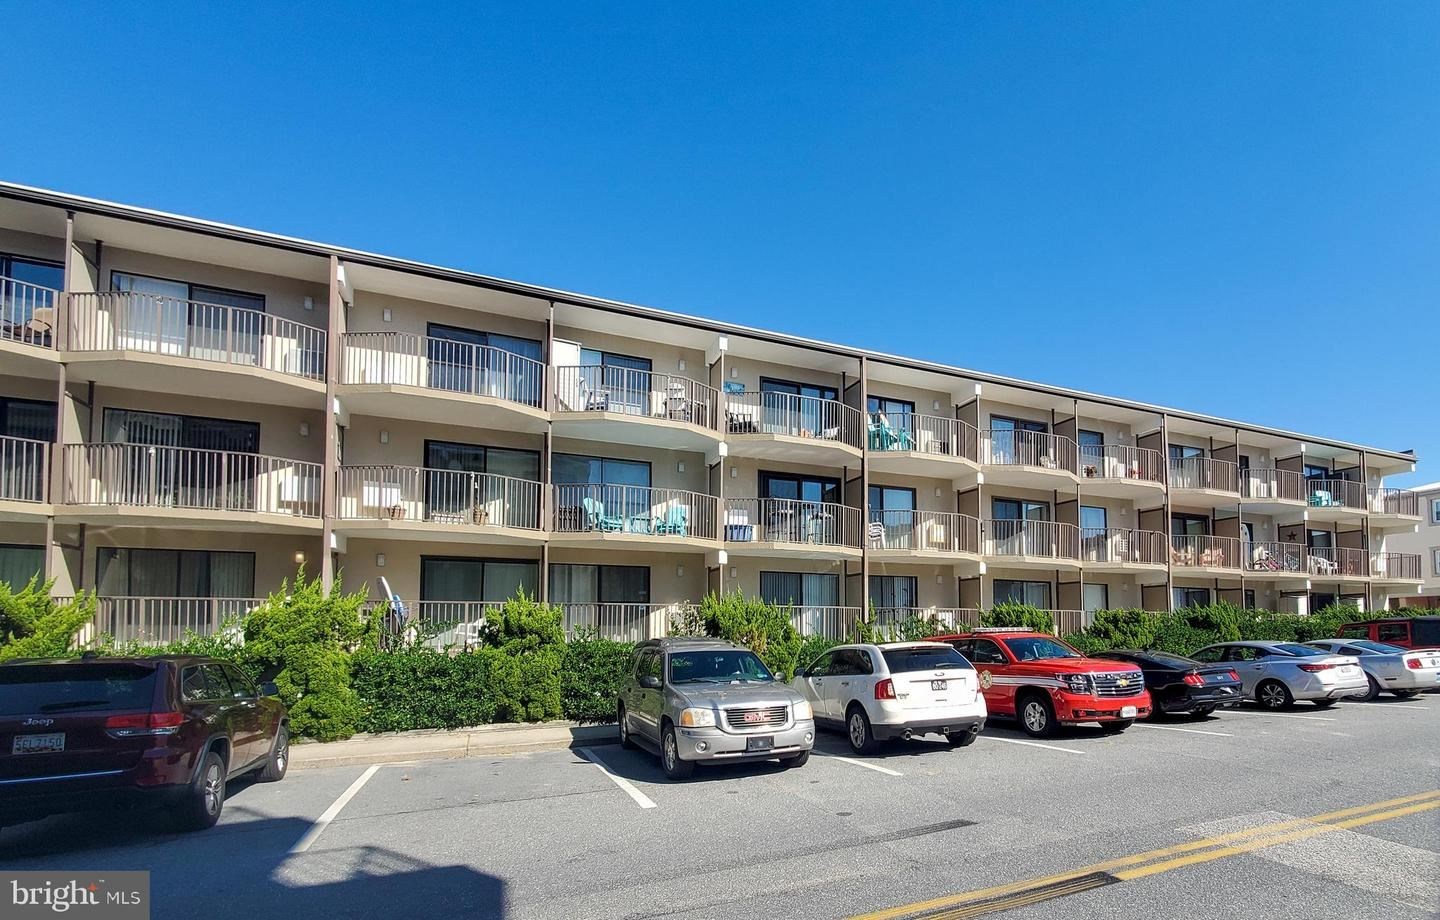 Photo for 8 36TH ST #102, OCEAN CITY, MD 21842 (MLS # MDWO2001616)